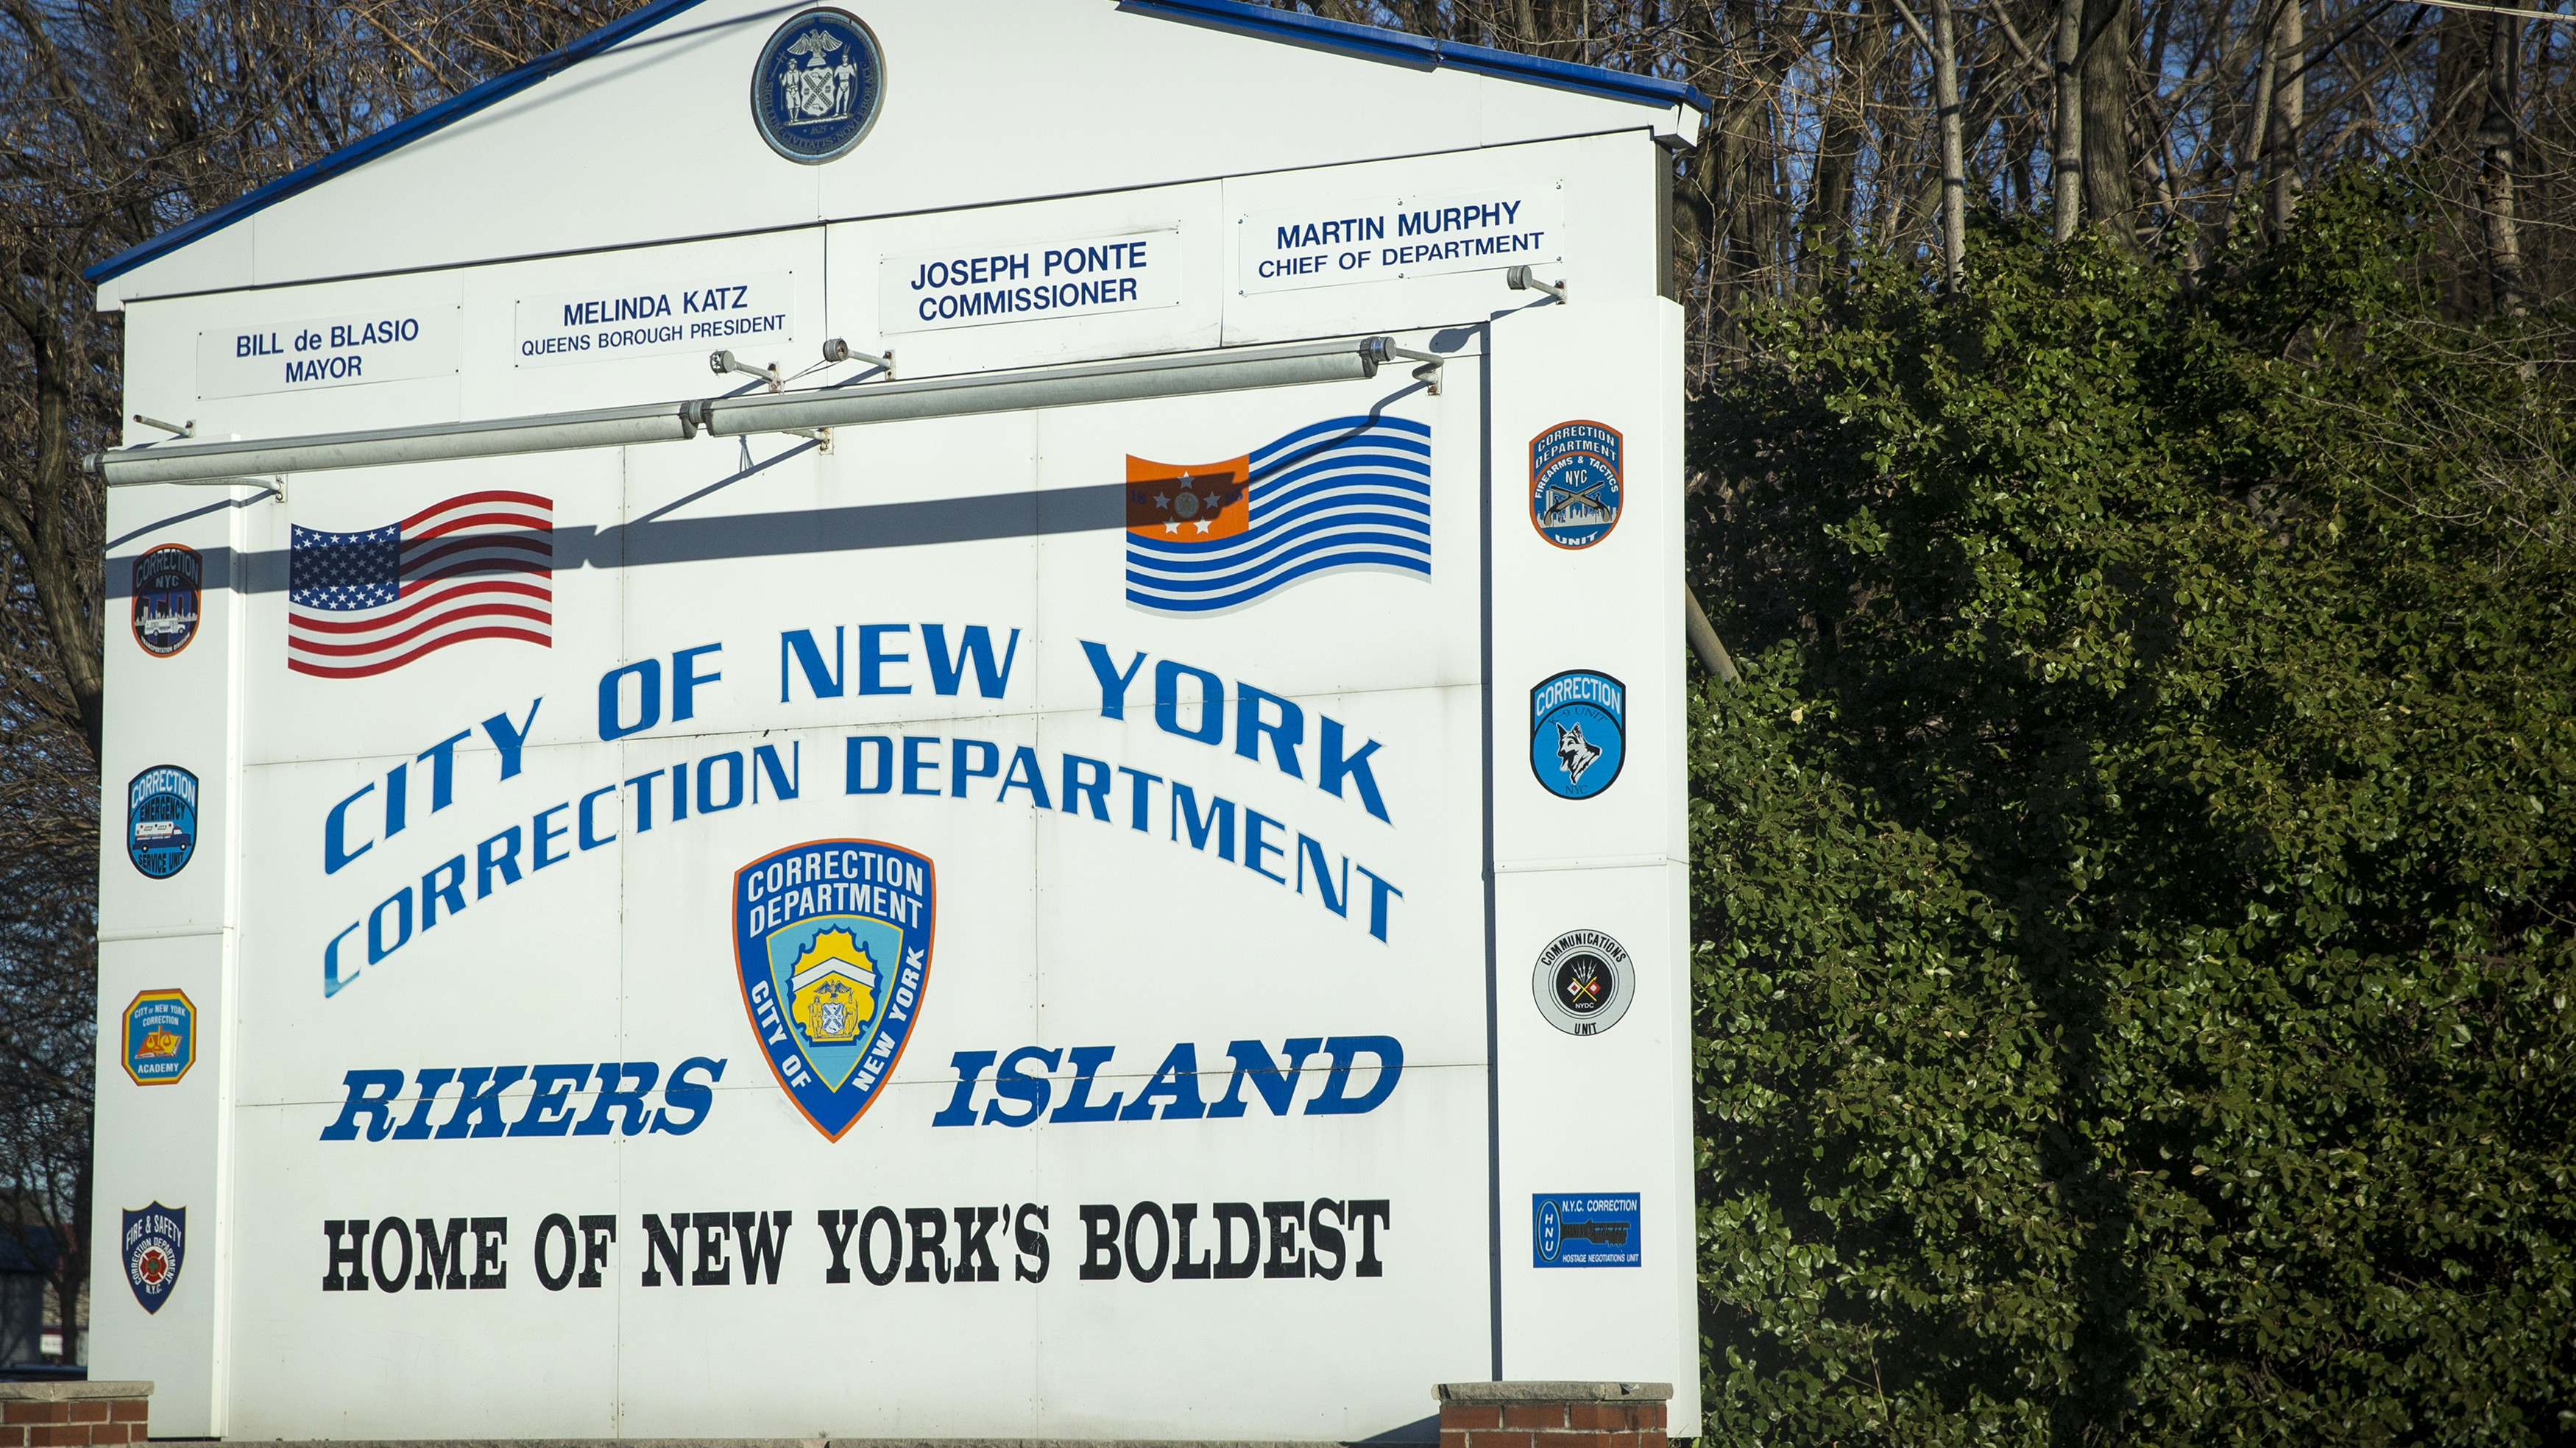 A car exits the Rikers Island Correctional facility in New York March 12, 2015.